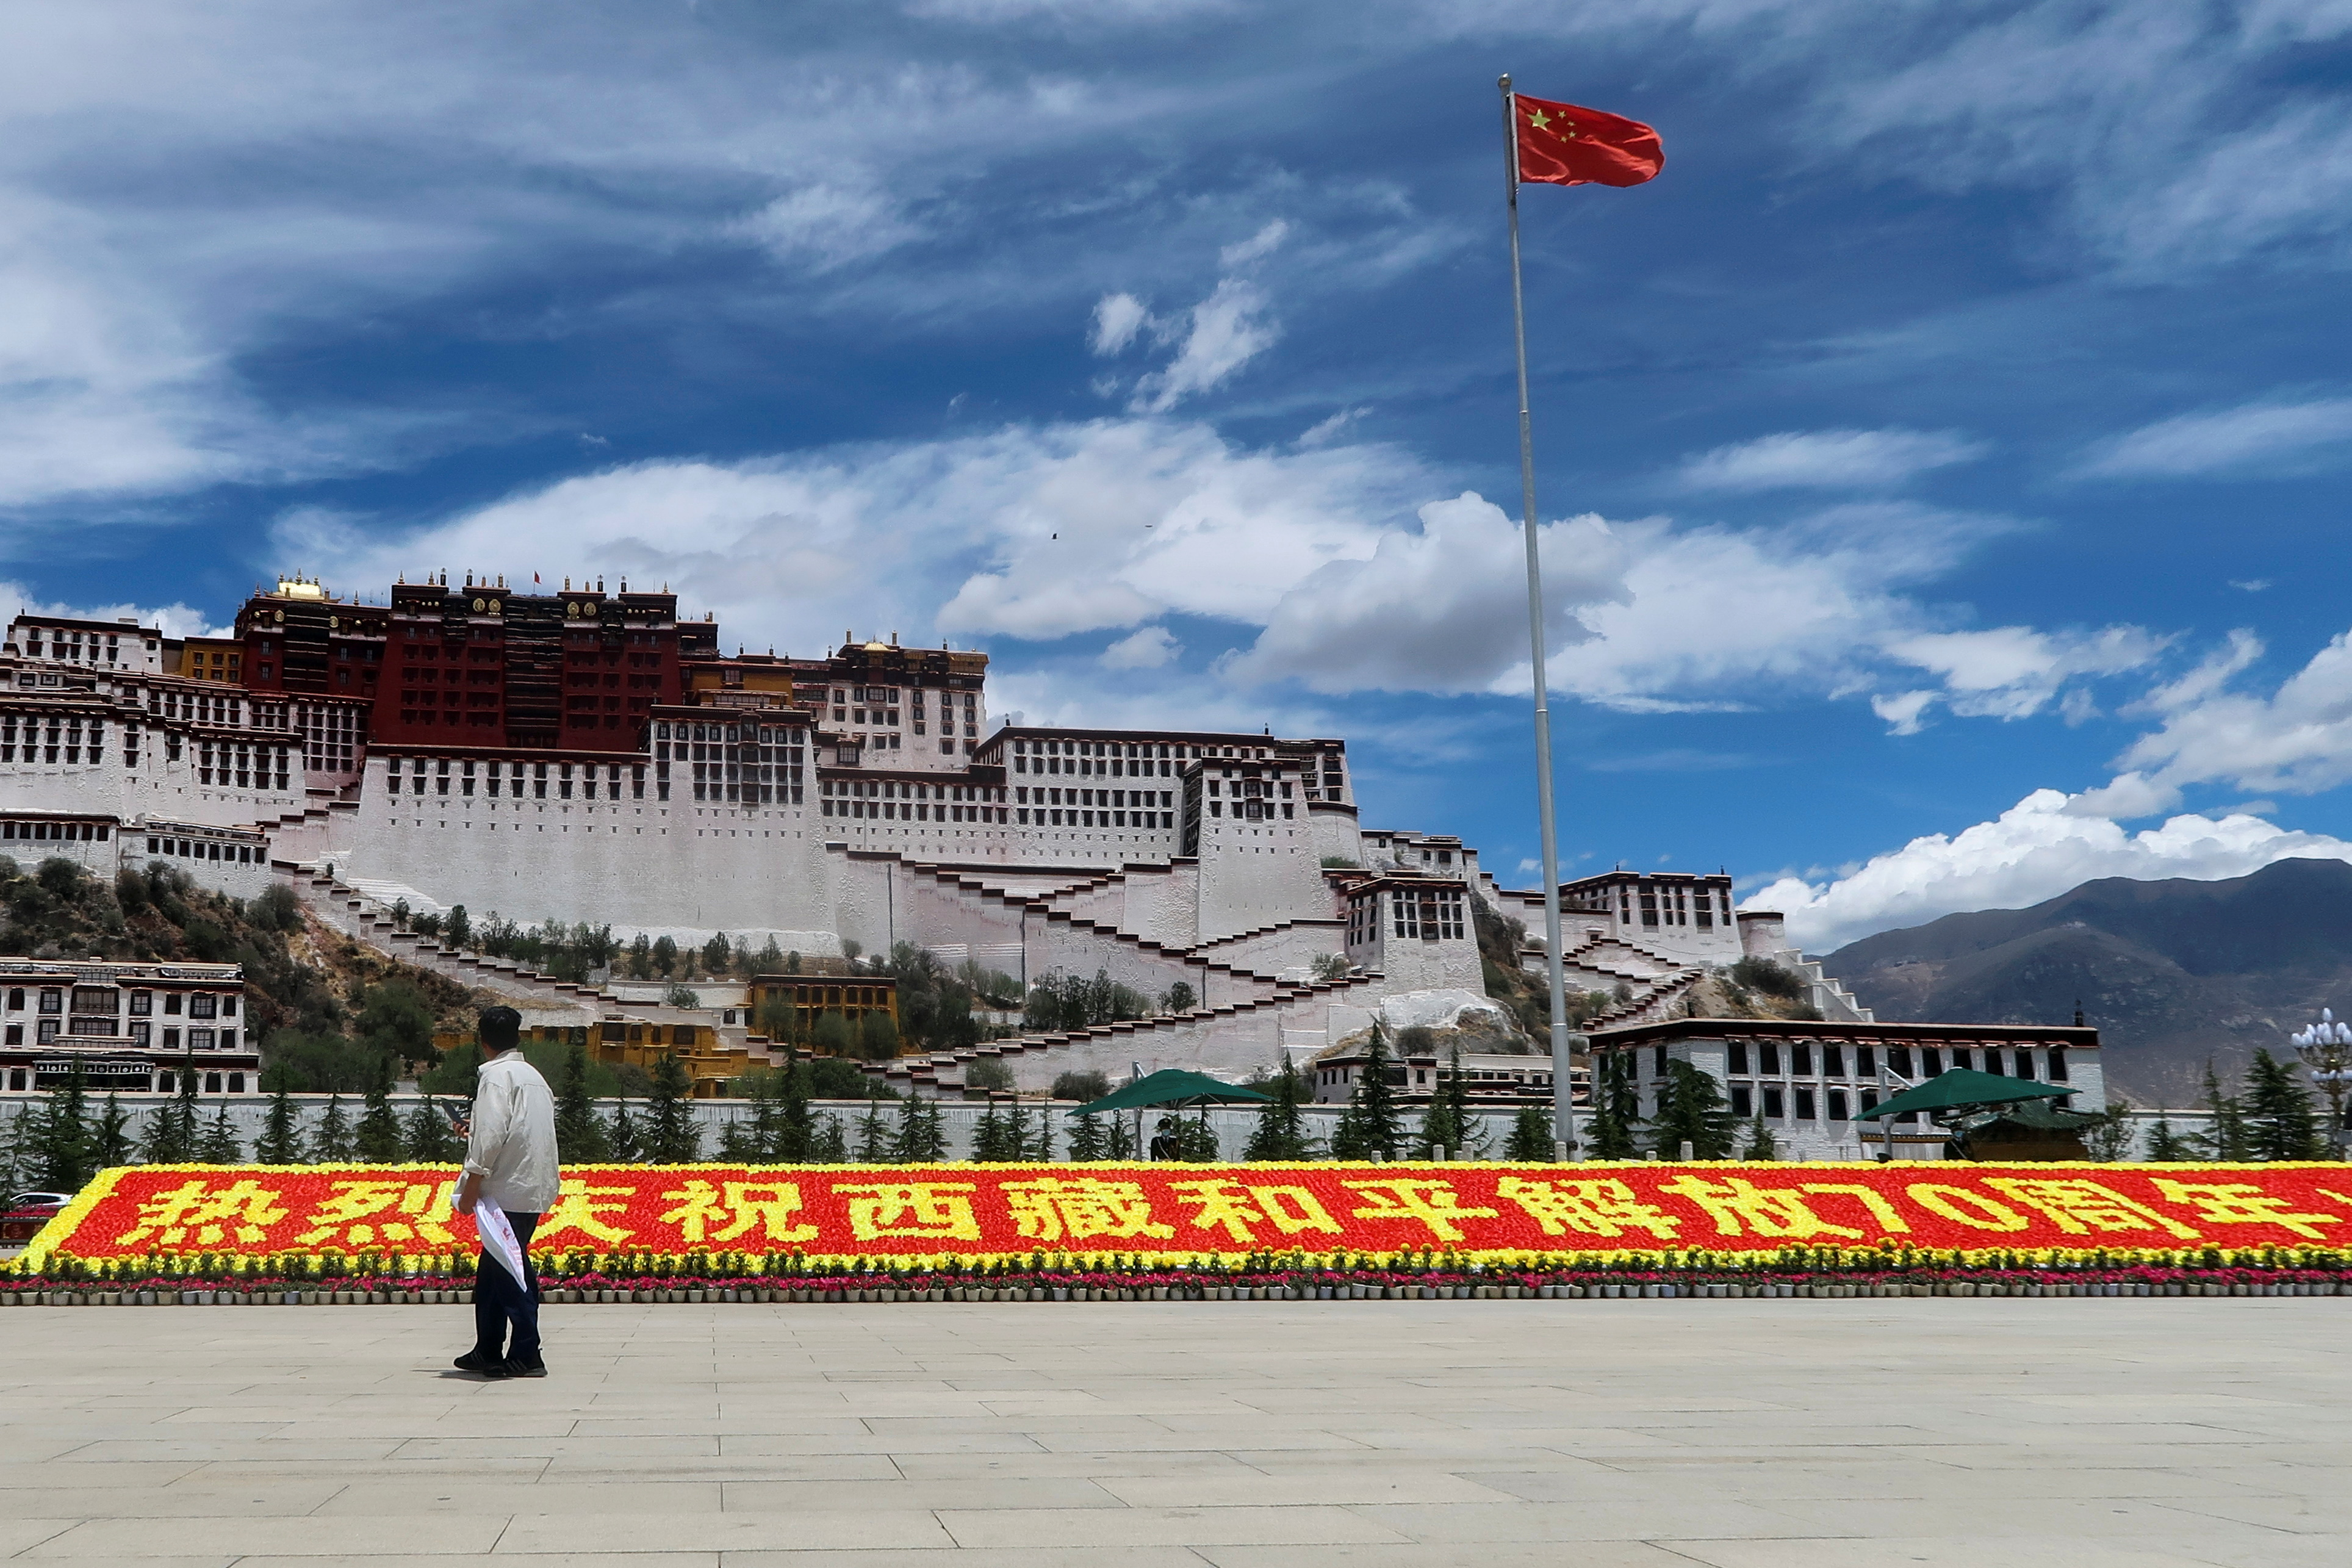 A man stands in front of a sign marking 70 years since Chinese rule over Tibet Autonomous Region, on the Potala Palace Square during a government-organised media tour to Lhasa, Tibet Autonomous Region, China June 1, 2021. Picture taken June 1, 2021. REUTERS/Martin Pollard